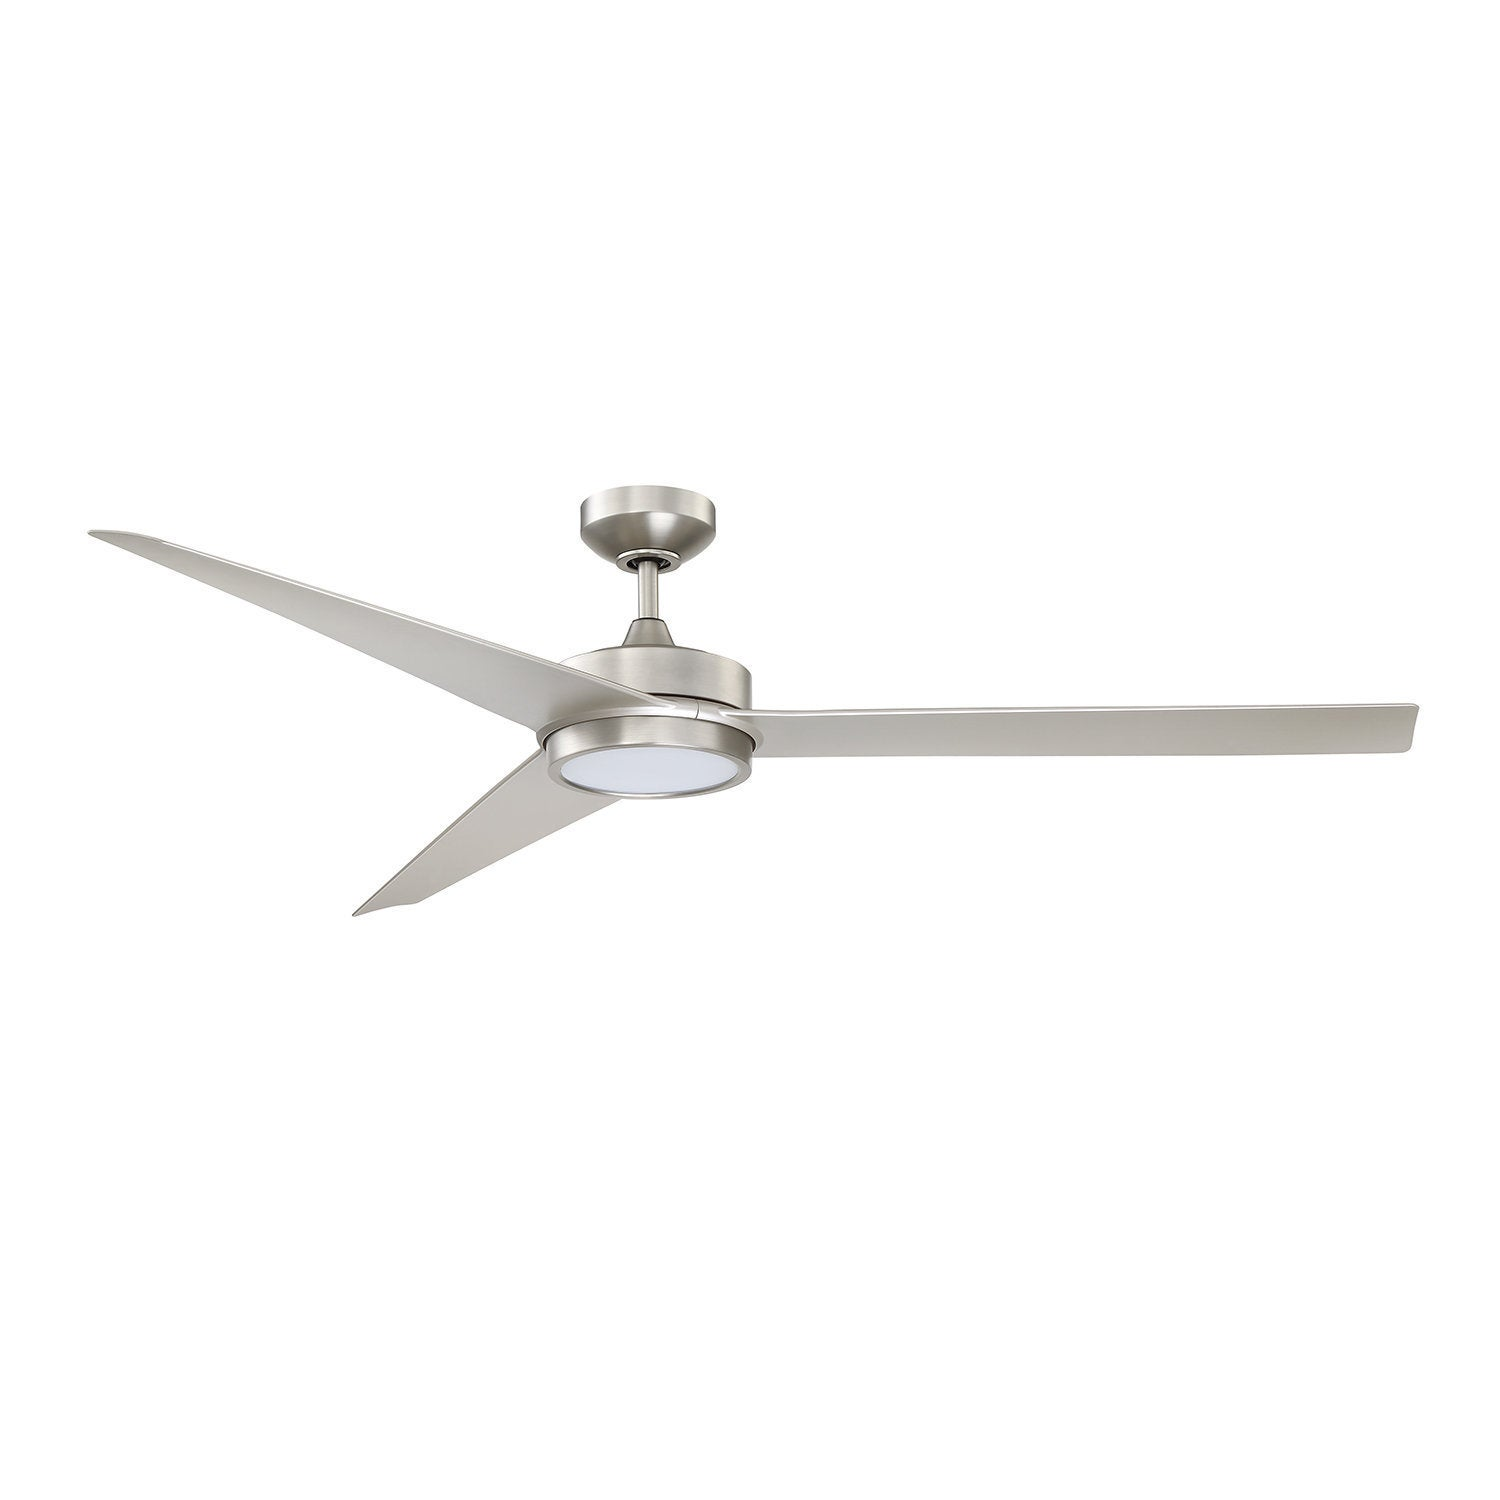 Triceptor Satin Nickel 60 inch LED DC motor Ceiling Fan Free